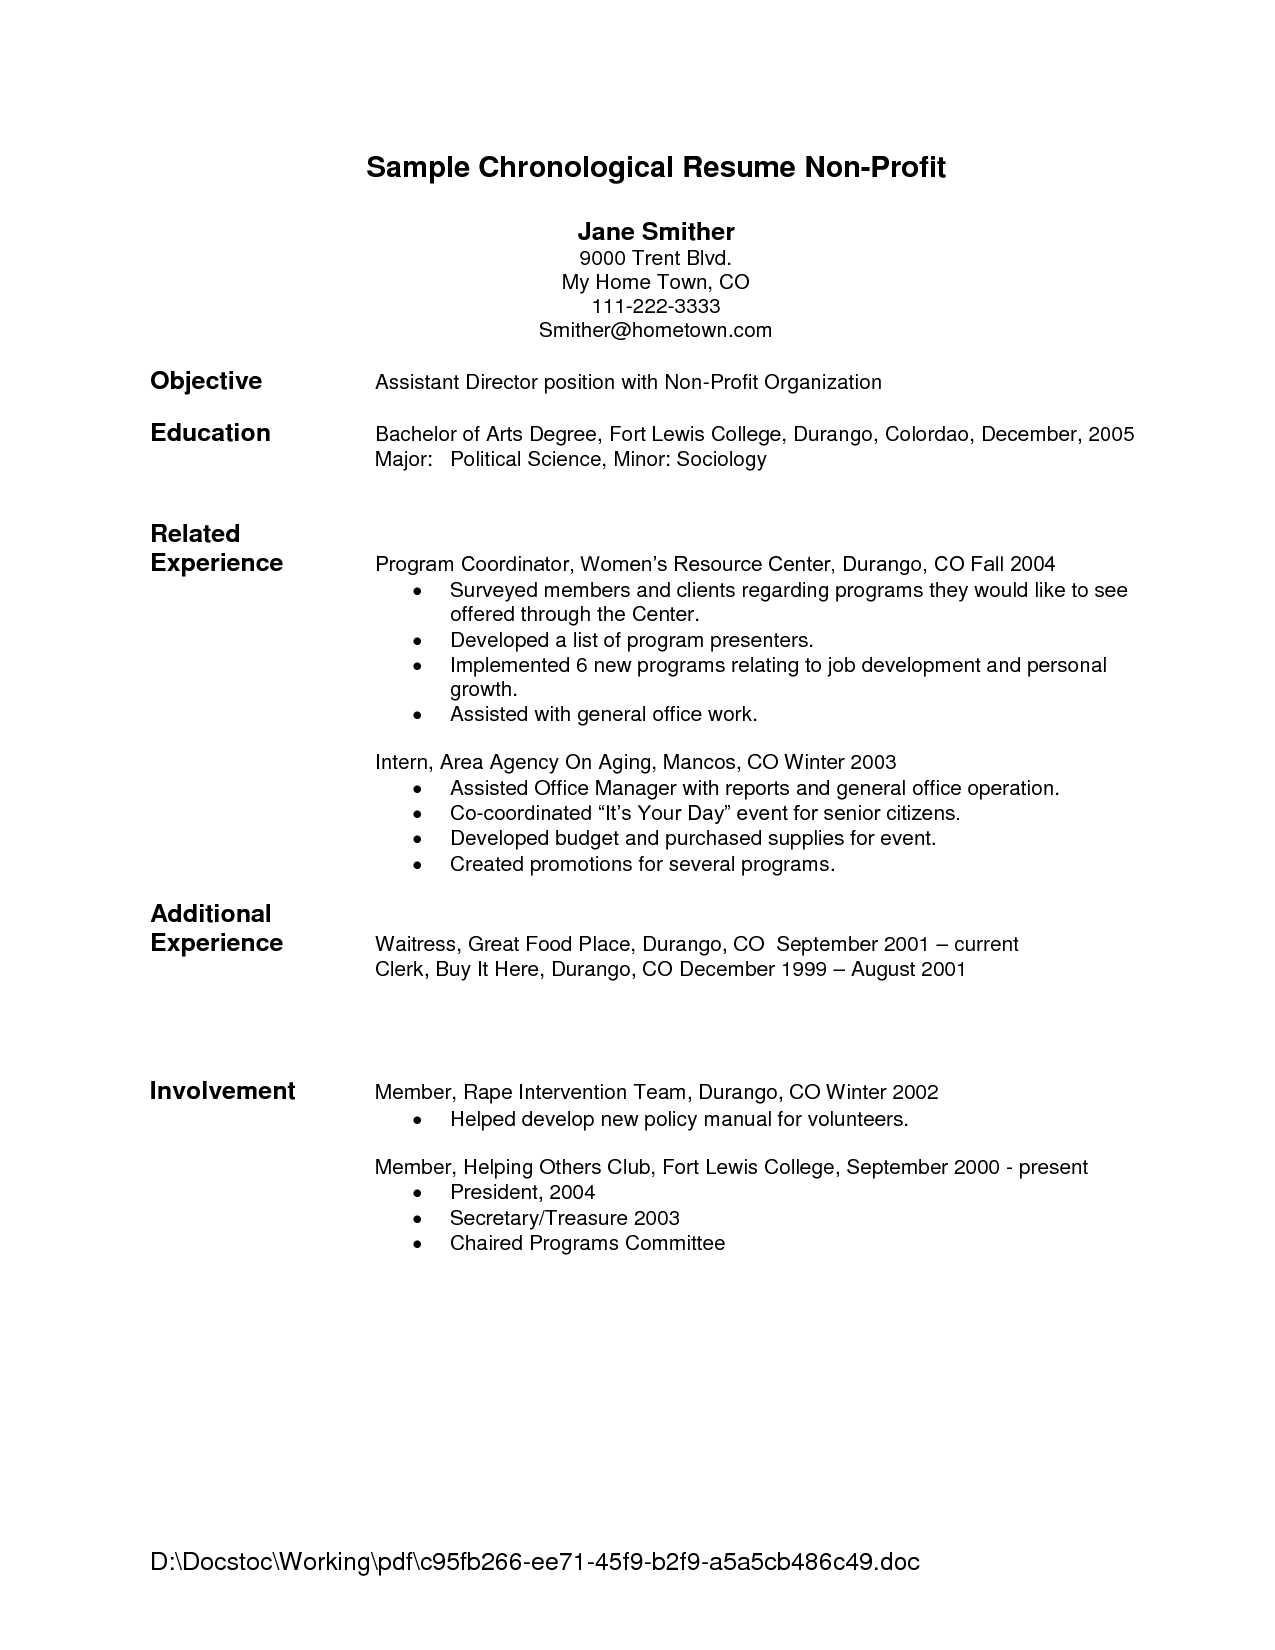 Geographic Information System Engineer Sample Resume Chronological Resume Template  Monday Resume  Pinterest